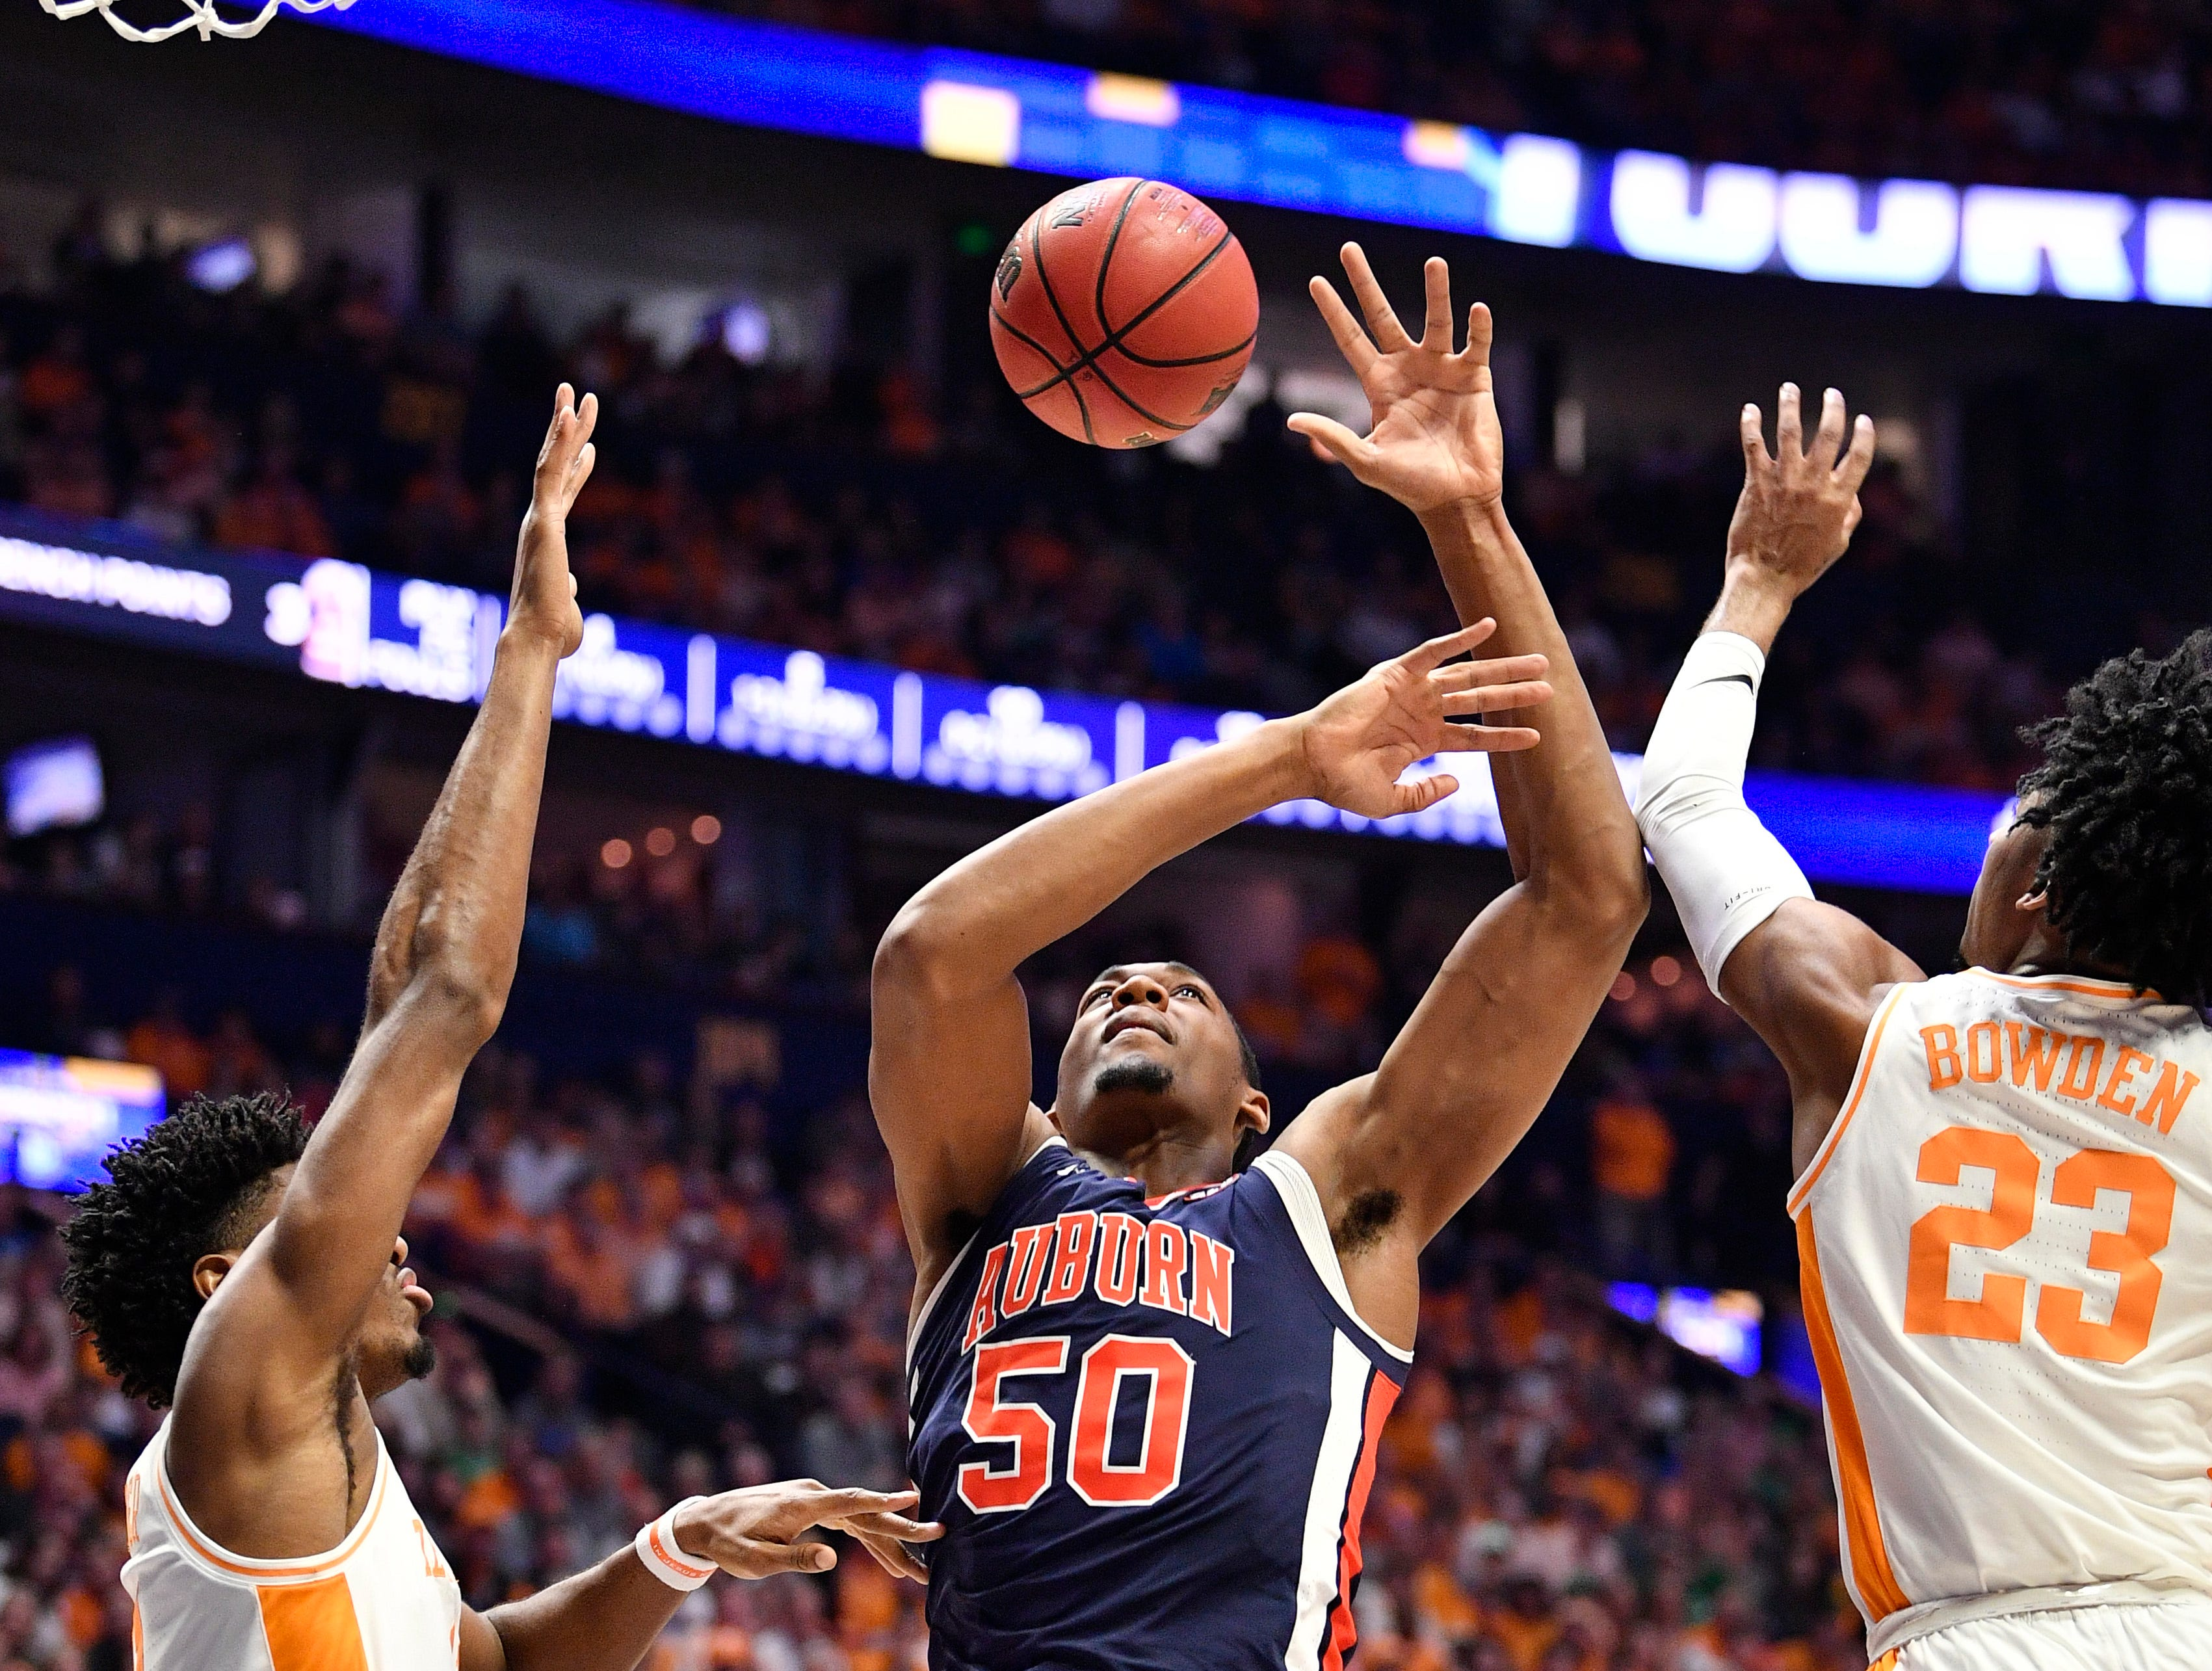 Auburn center Austin Wiley (50) loses the ball defended by Tennessee forward Kyle Alexander (11) and guard Jordan Bowden (23) during the first half of the SEC Men's Basketball Tournament championship game at Bridgestone Arena in Nashville, Tenn., Sunday, March 17, 2019.